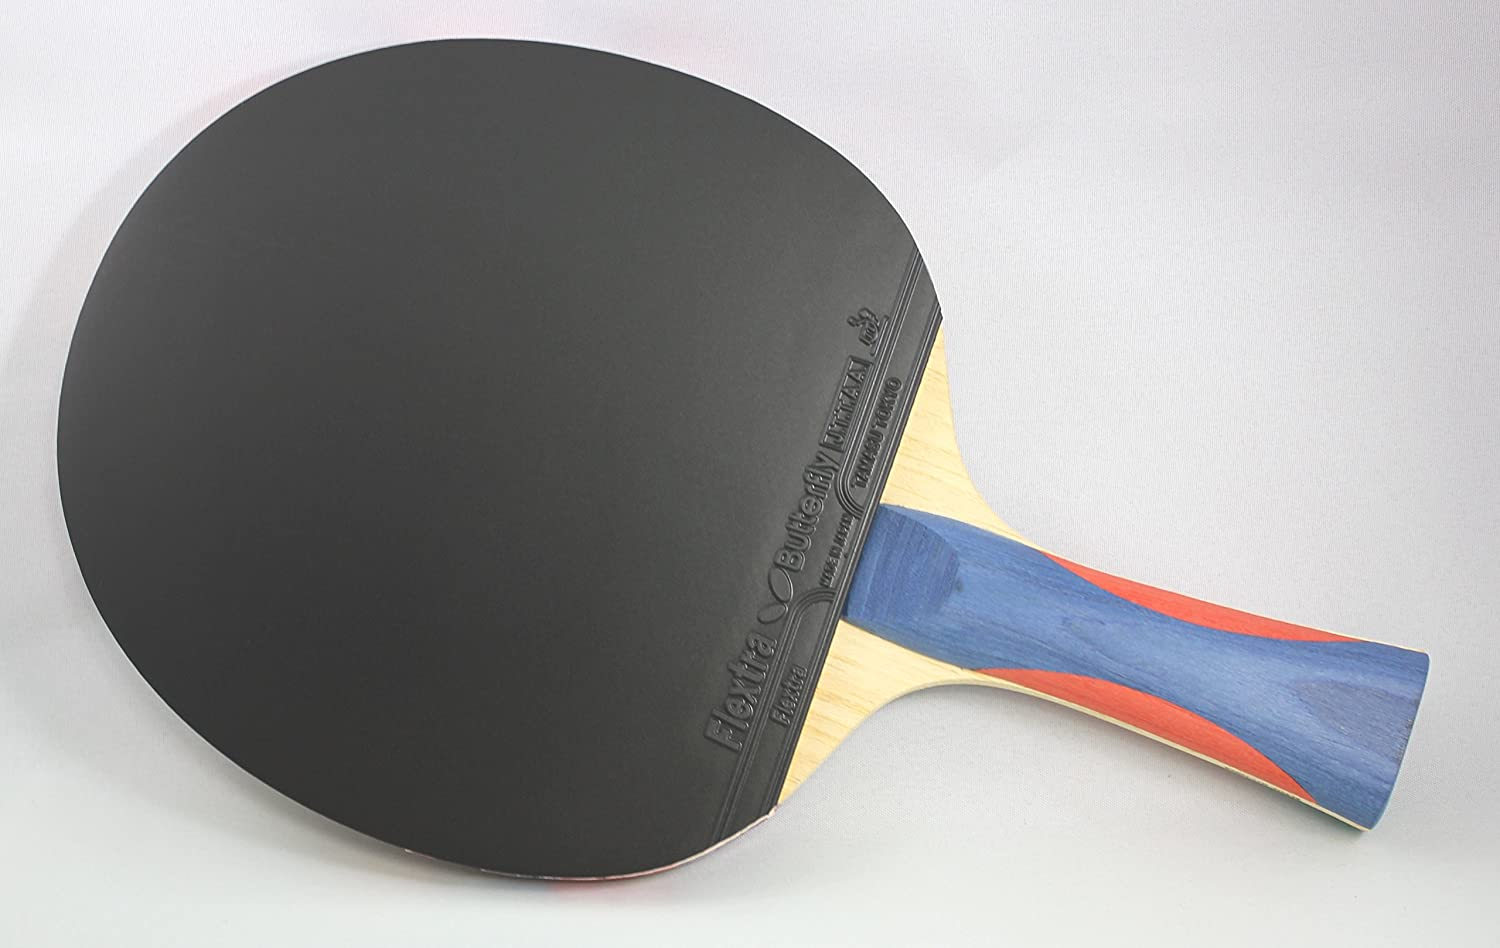 Butterfly Nakama S-8 Table Tennis Racket – Professional ITTF Approved Ping Pong Paddle – Flextra Table Tennis Rubber and Thick Sponge Layer Ping Pong Racket – 2 Ping Pong Balls Included : Sports & Outdoors